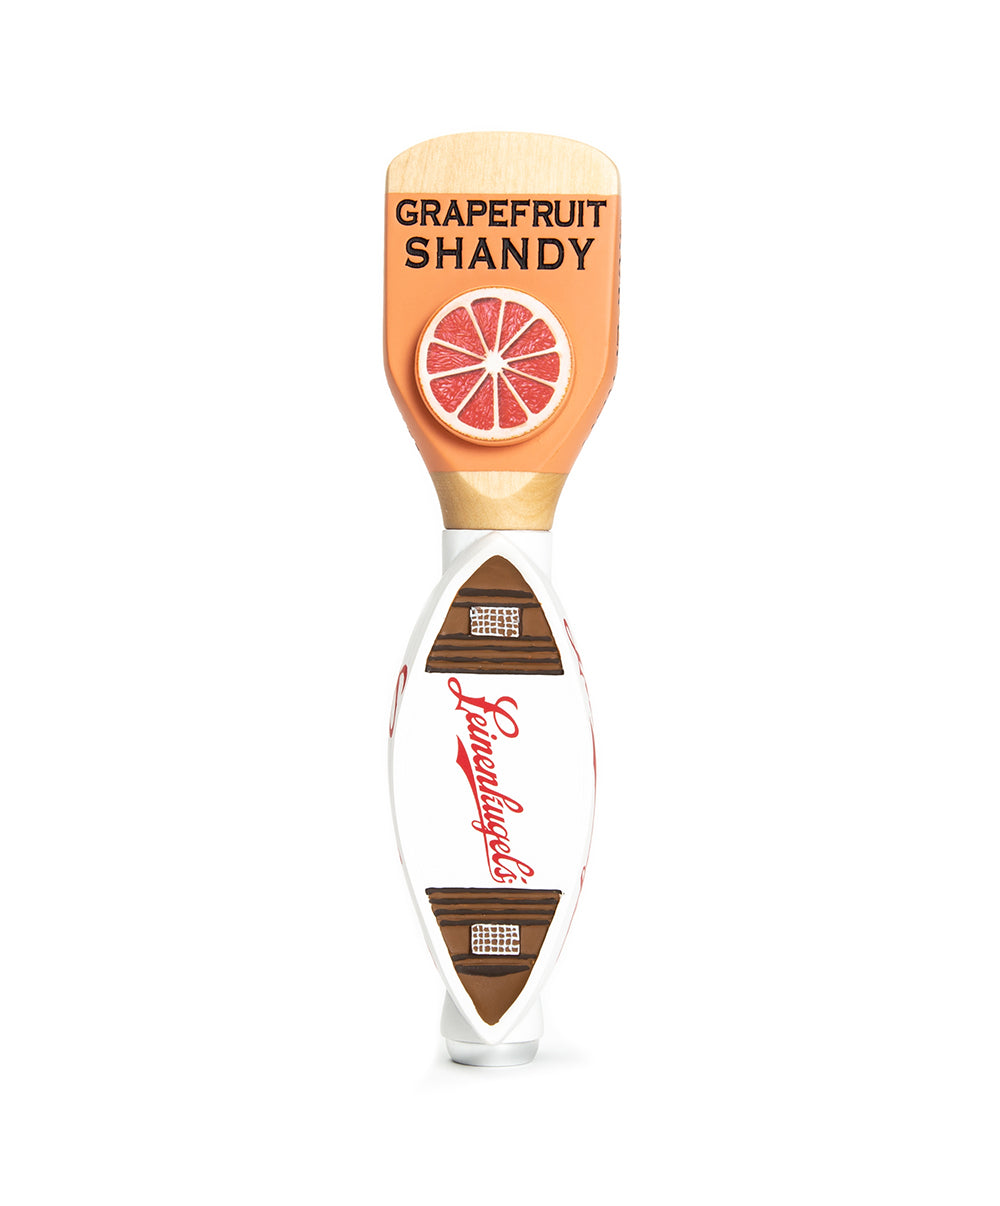 GRAPEFRUIT SHANDY TAP TOP